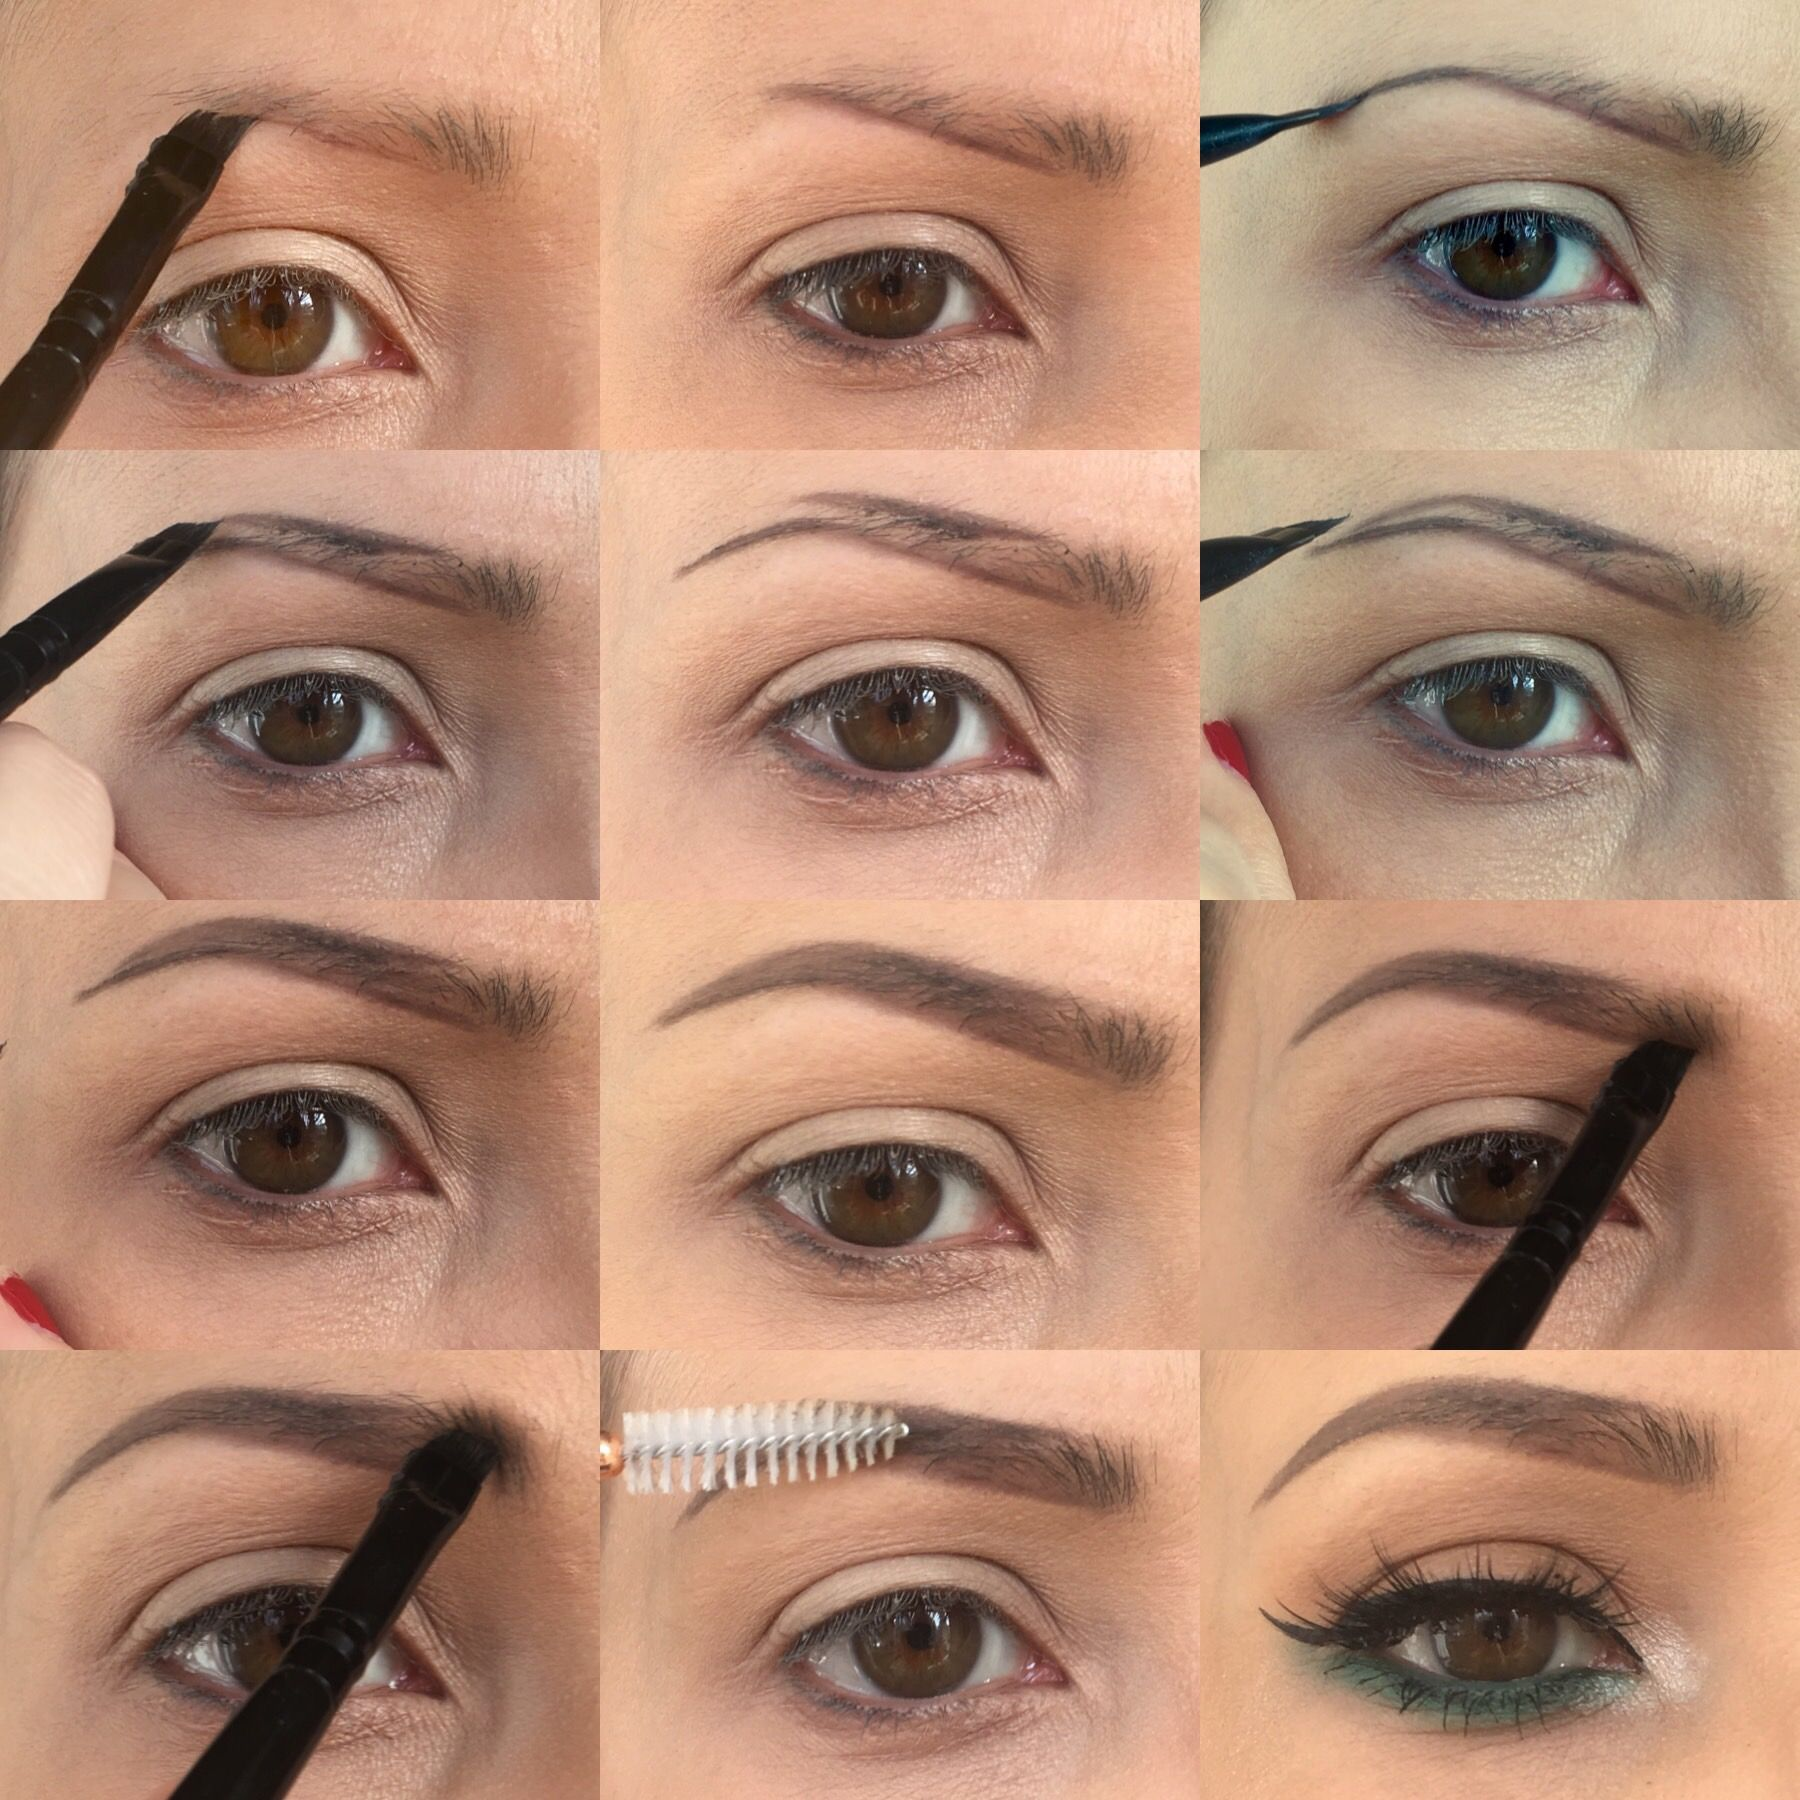 Brow pictorial tutorial step by step make up application brow pictorial tutorial step by step baditri Images